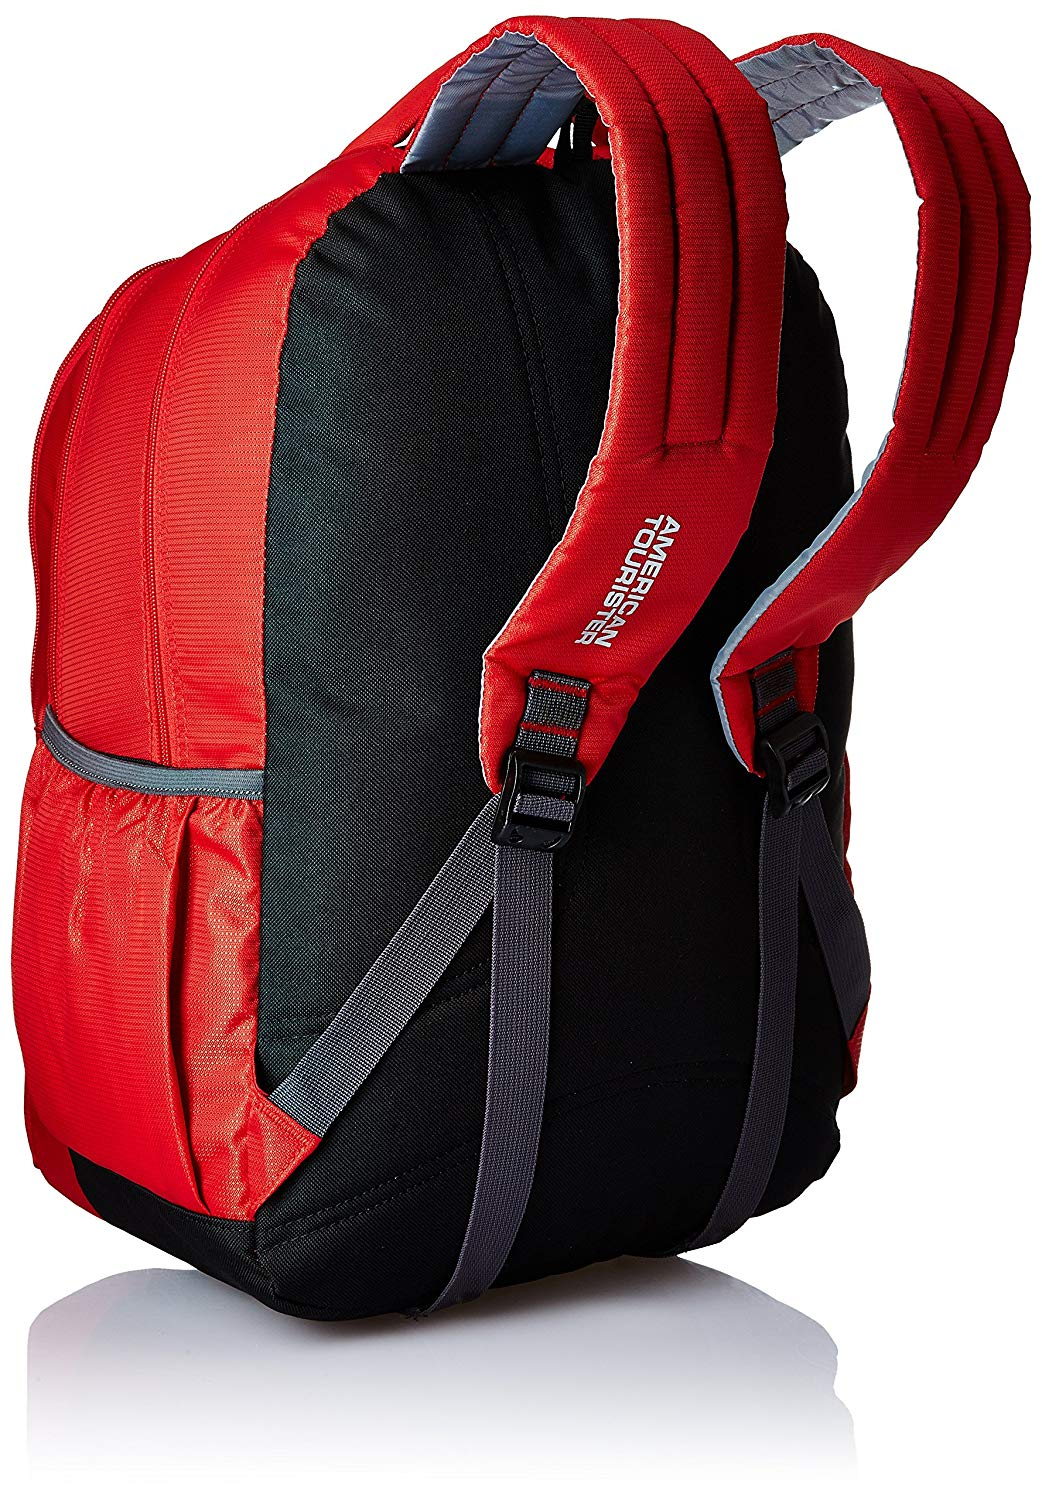 f1f7ff3ddd7d Best Price American Tourister Backpack In India- Fenix Toulouse Handball